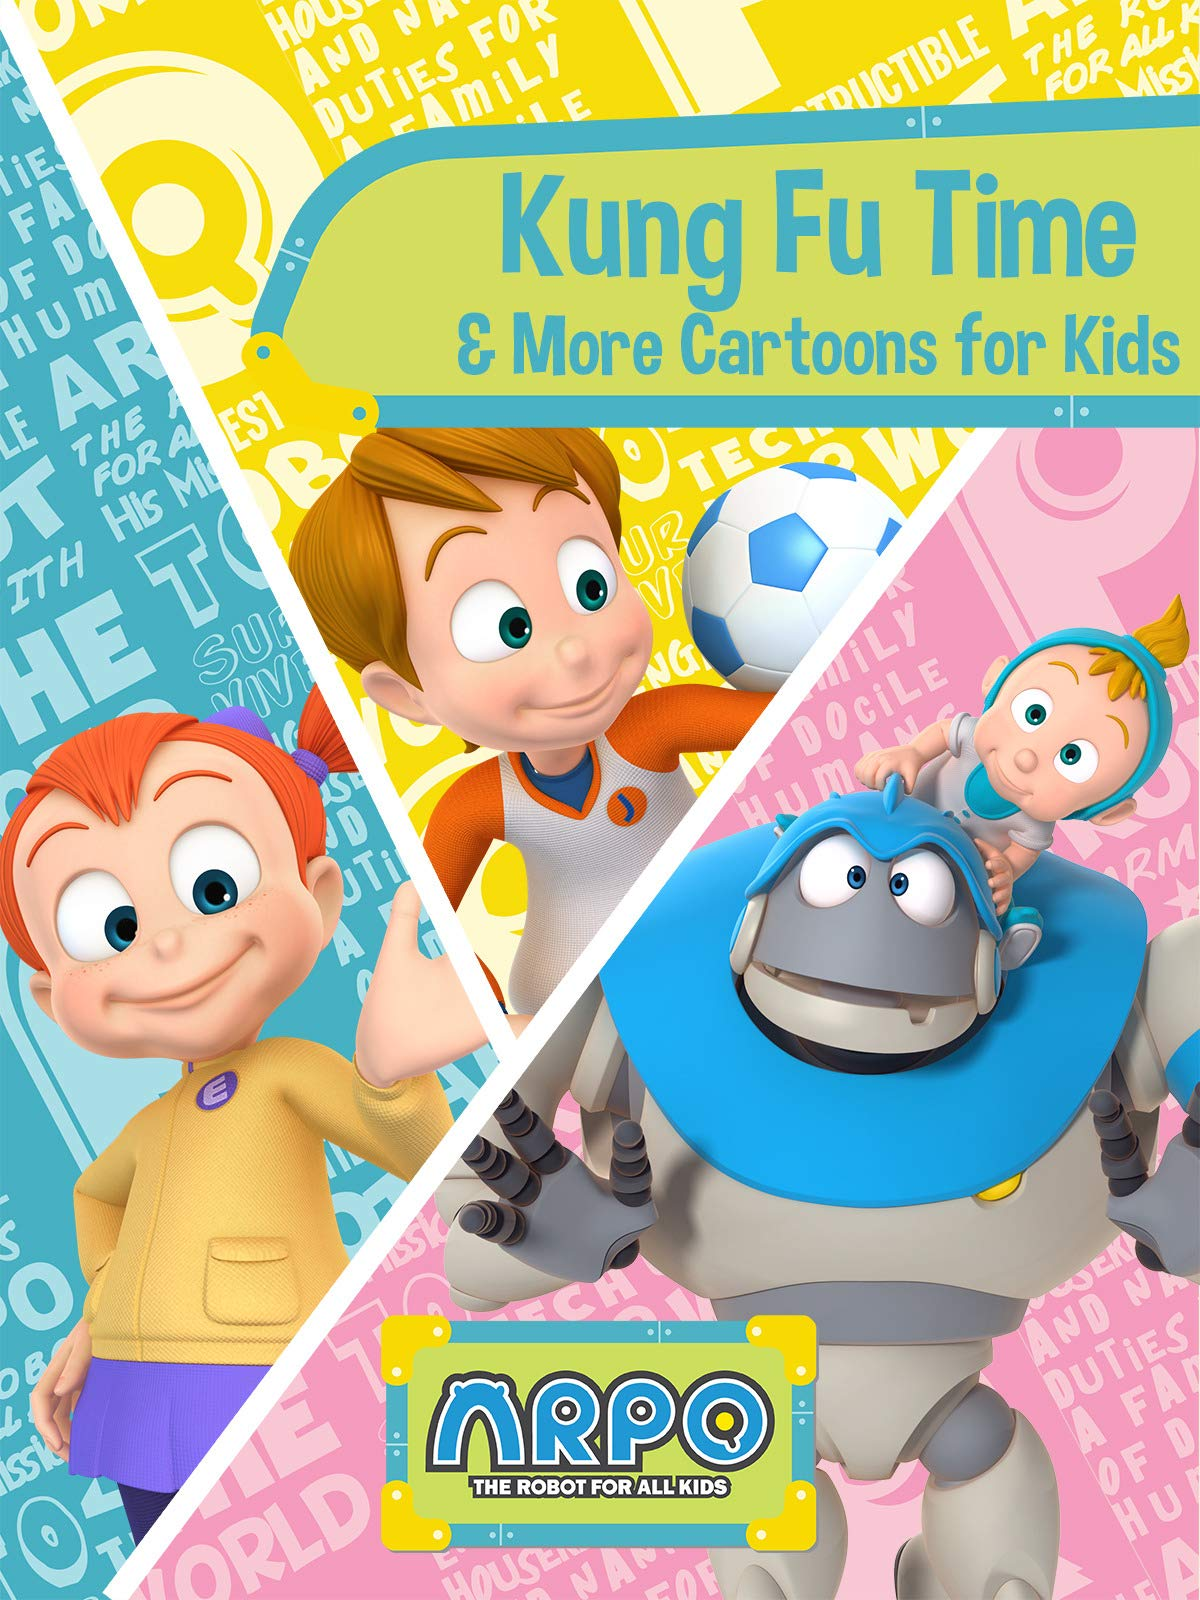 Arpo the Robot for All Kids - Kung Fu Time & More Cartoons for Kids on Amazon Prime Video UK